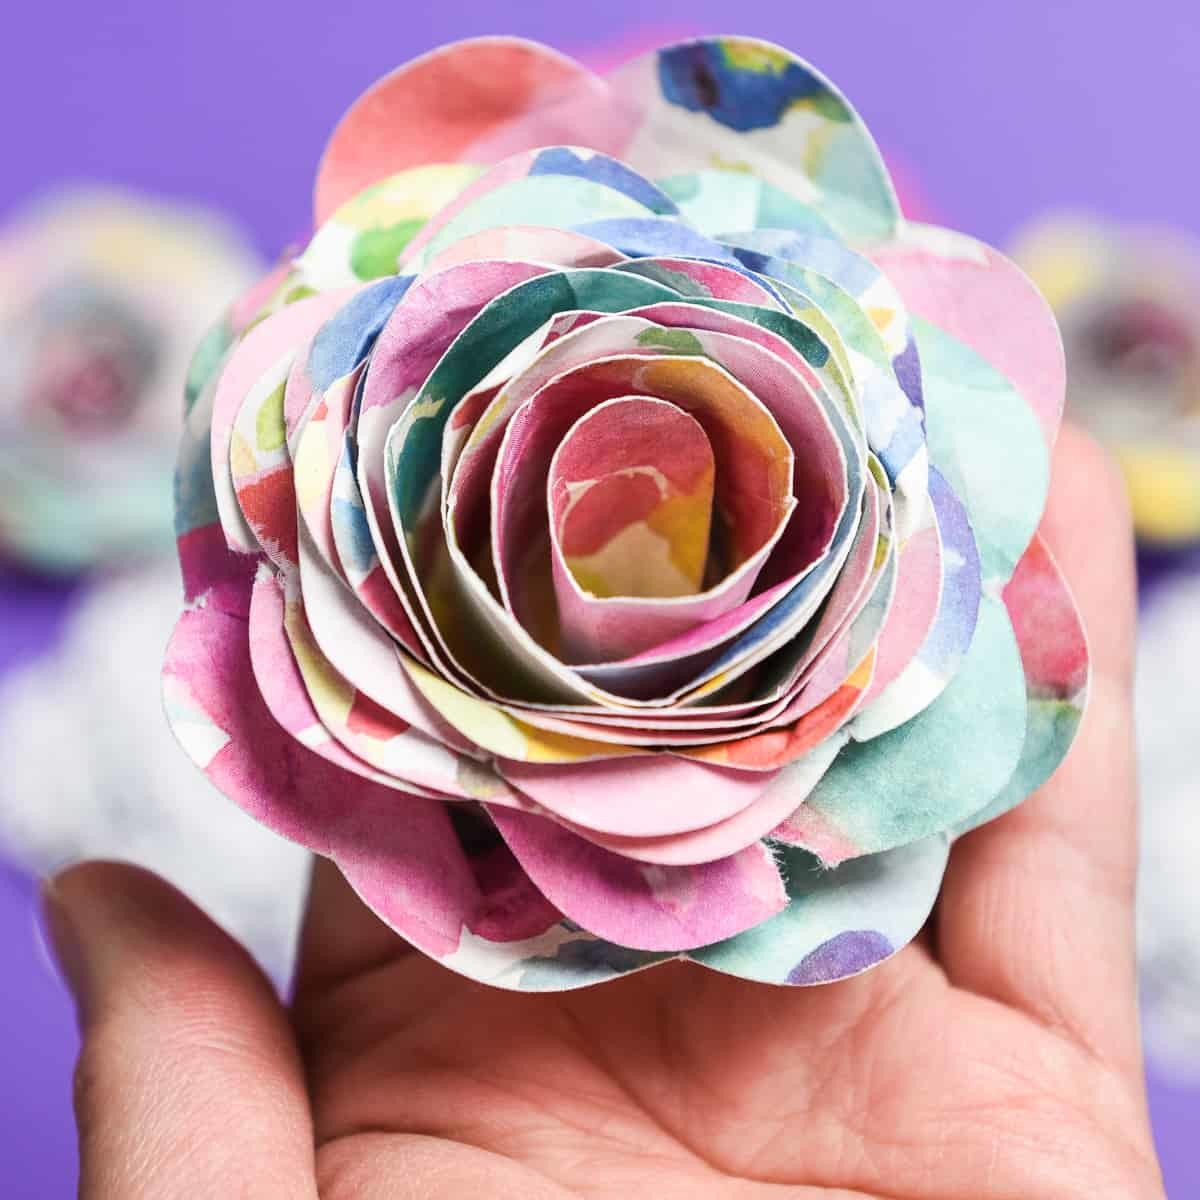 3D Paper Flowers - Sometimes it seems like all I do with my Silhouette Machine are crafts with vinyl. But I'm starting to make myself use paper more because it's easy and cheap! Like these 3D paper flowers, they're a quick craft to do on a rainy day and there are so many different kinds to make!